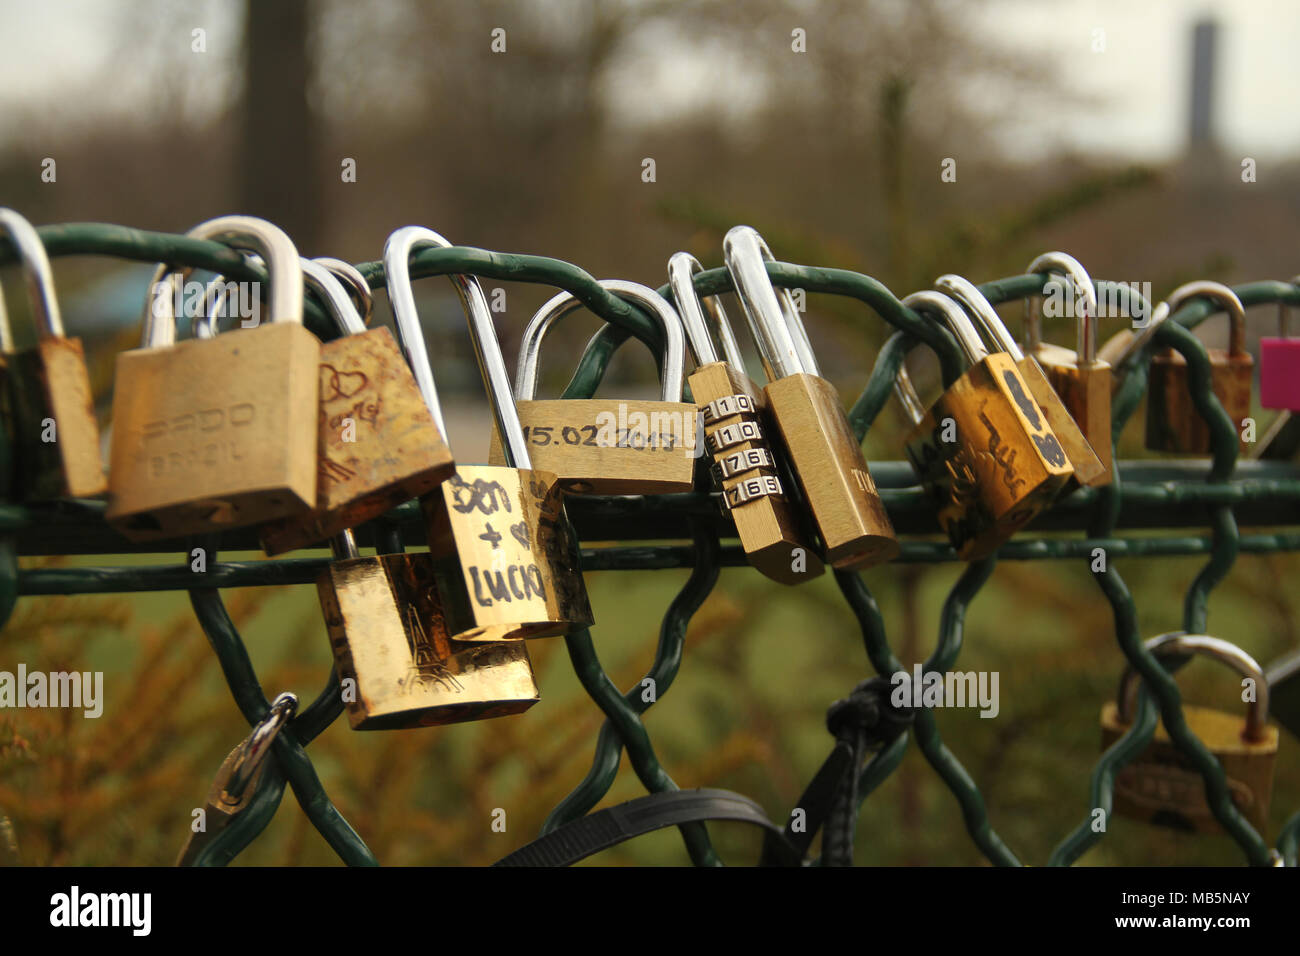 Paris, France -  02 April, 2018. Padlocks seen by a fence in Jardins du Trocadéro overlooking the Eiffel tower on 2nd April 2018.  General view of Paris, France. @ David Mbiyu/Alamy Live News - Stock Image